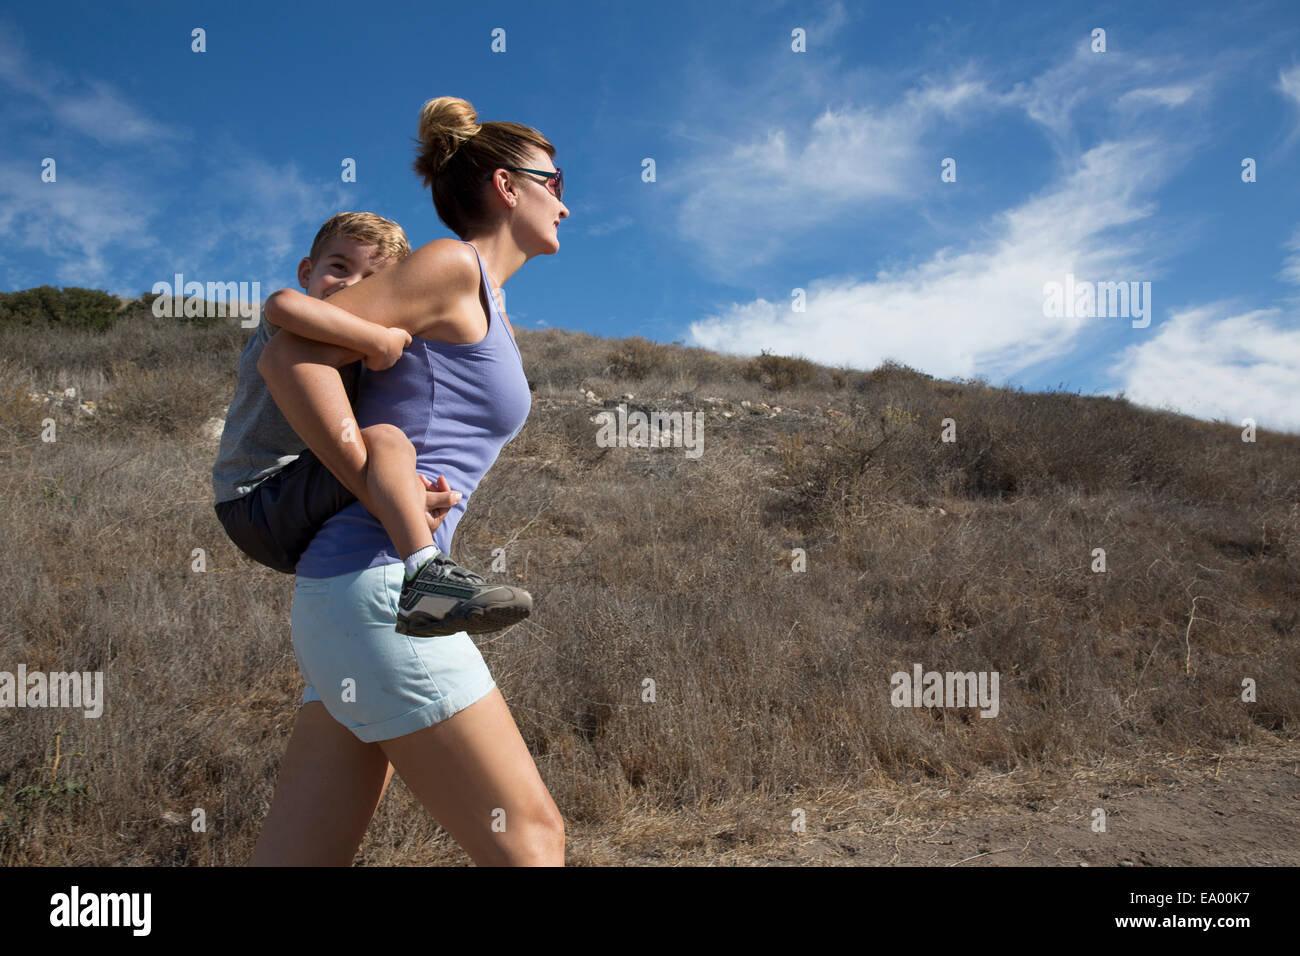 Mature woman giving son a piggy back up hill, County Park, Los Angeles, California, USA - Stock Image